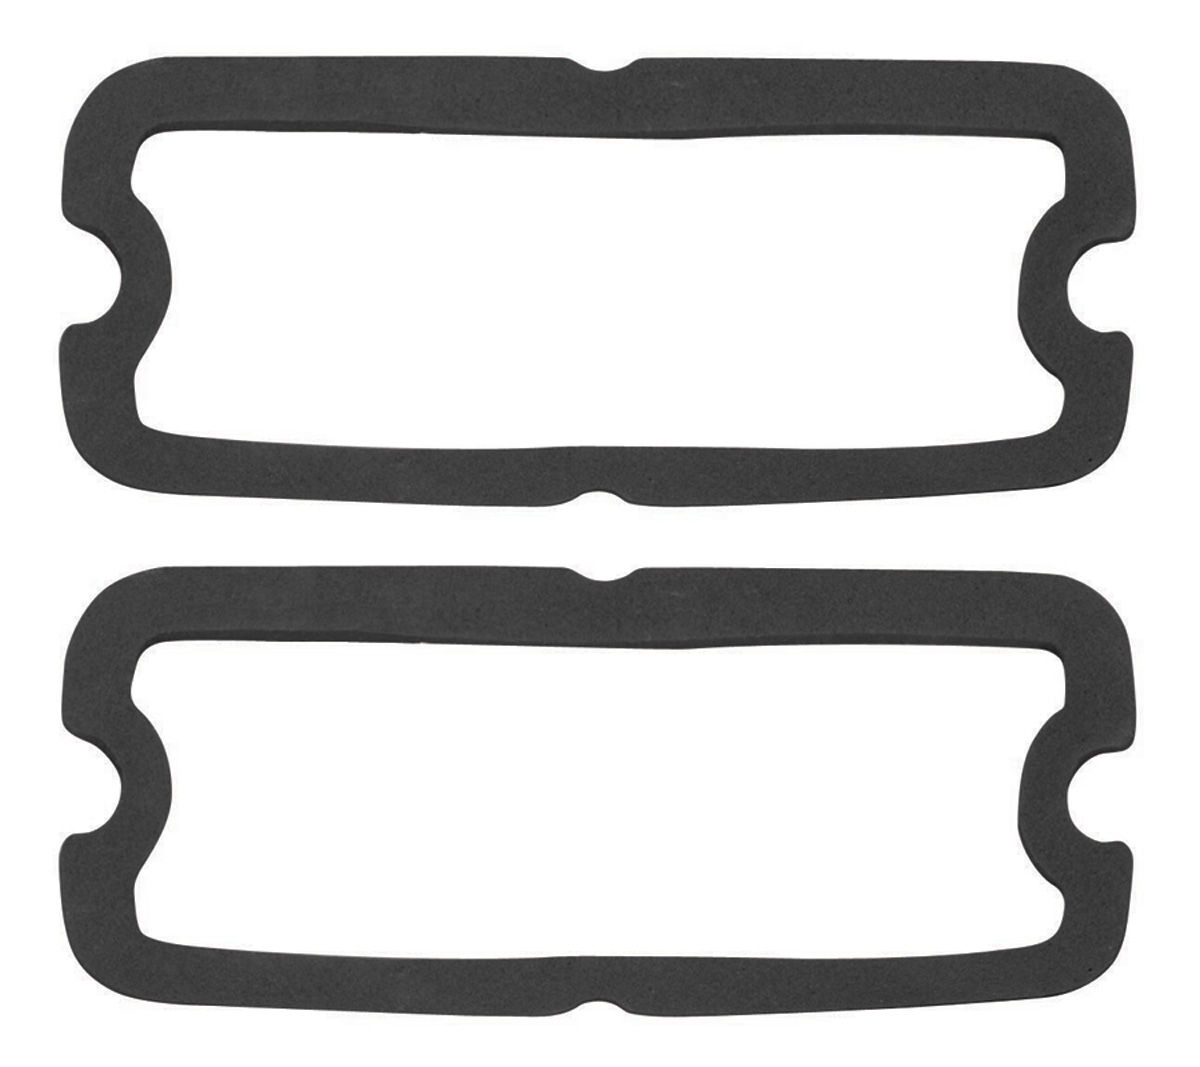 1964 Parking Lamp Lens Gaskets - PR